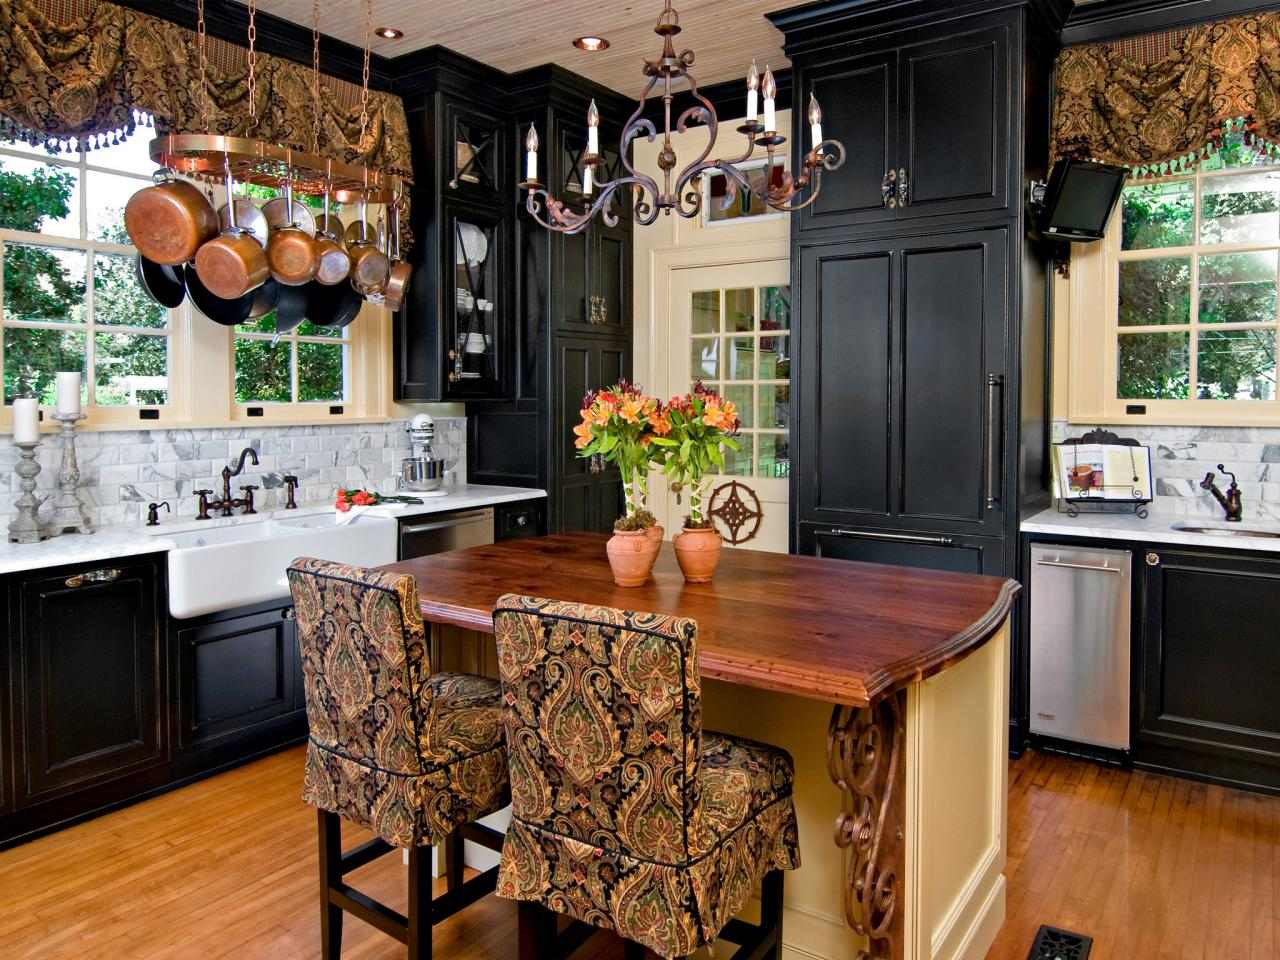 Kitchen Theme Ideas | Coordinate Your Kitchen Looks With House Look While Choosing From